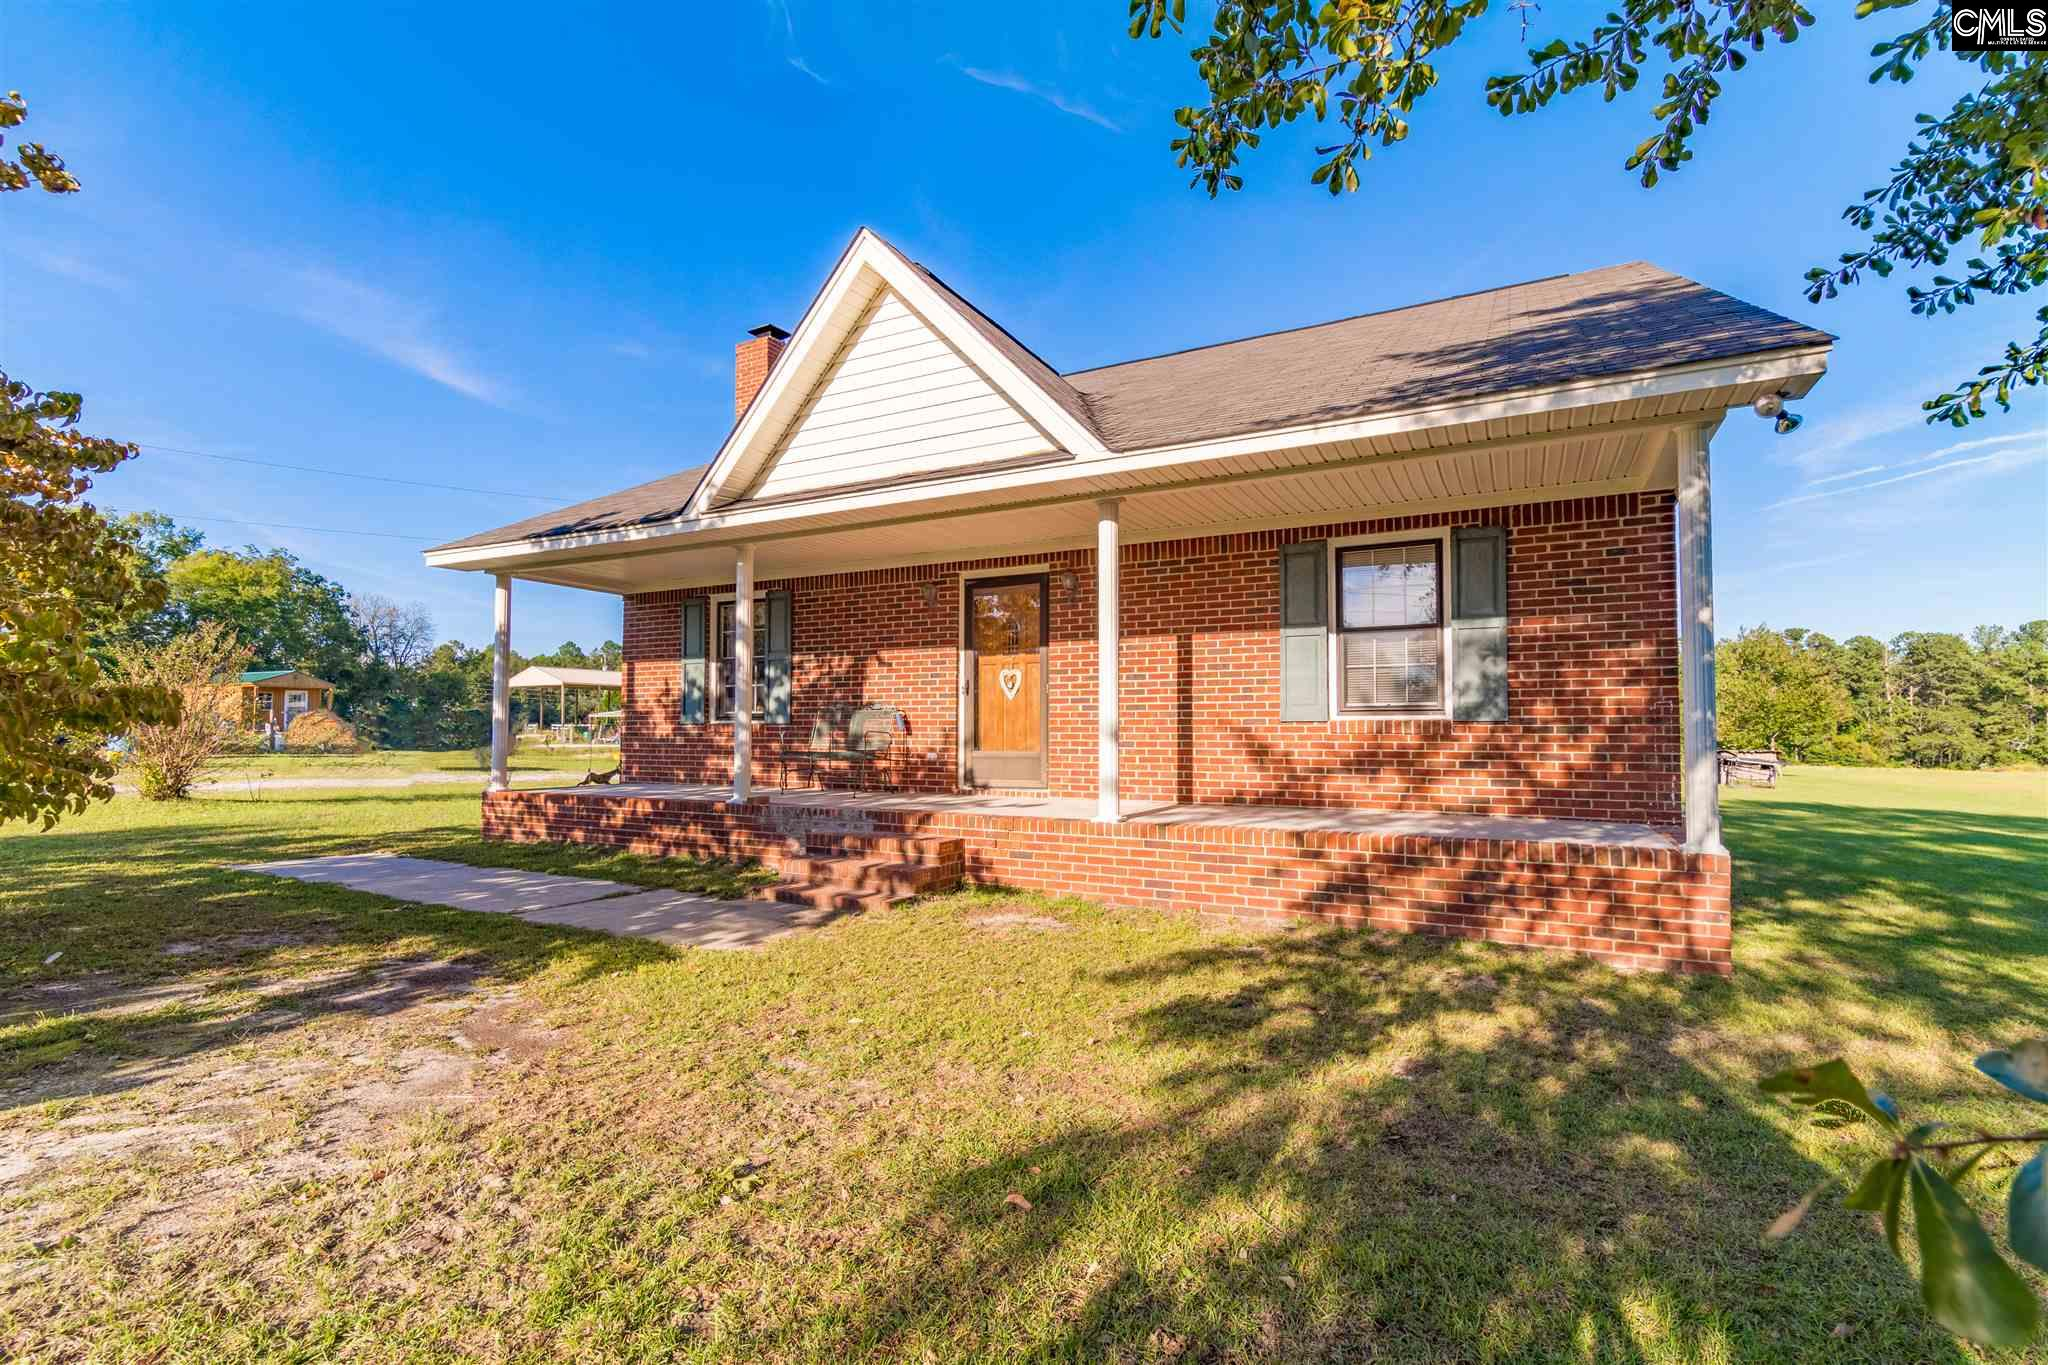 452 Wise Ferry Lexington, SC 29072